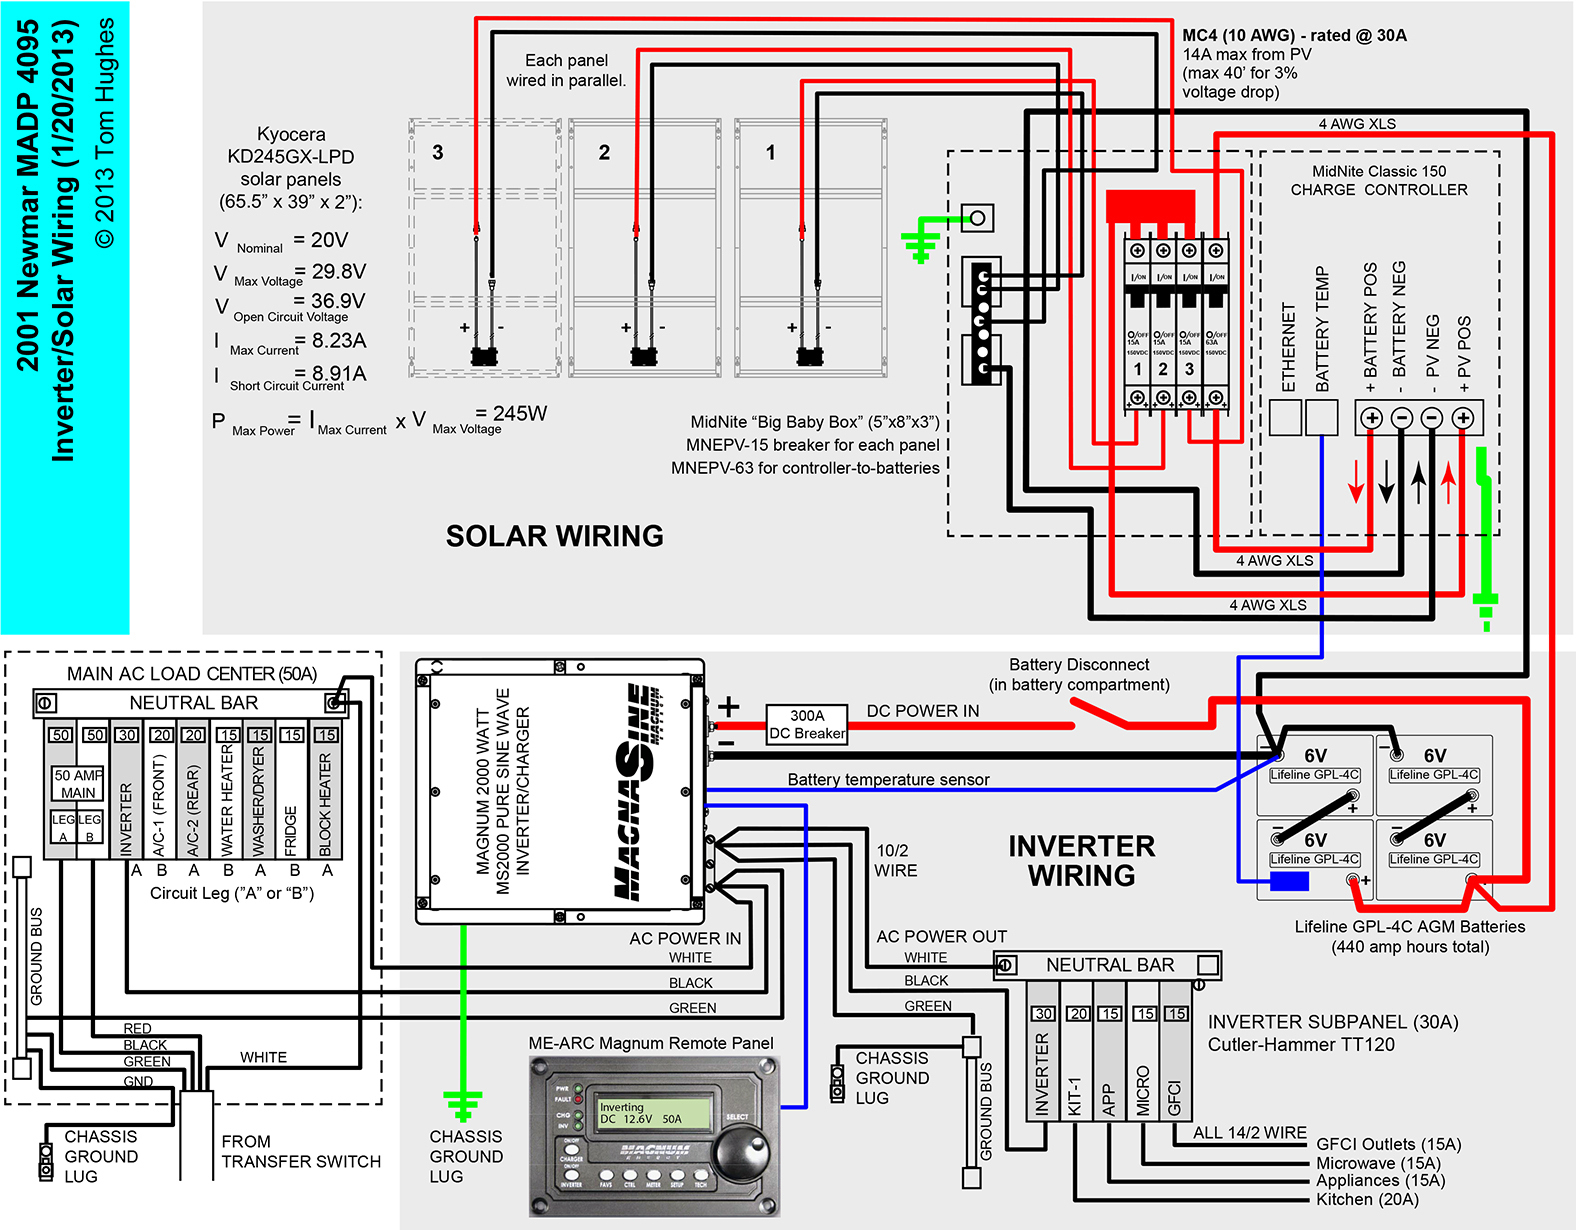 Rv Inverter Wiring Diagram | Wiring Diagram - Rv Inverter Wiring Diagram